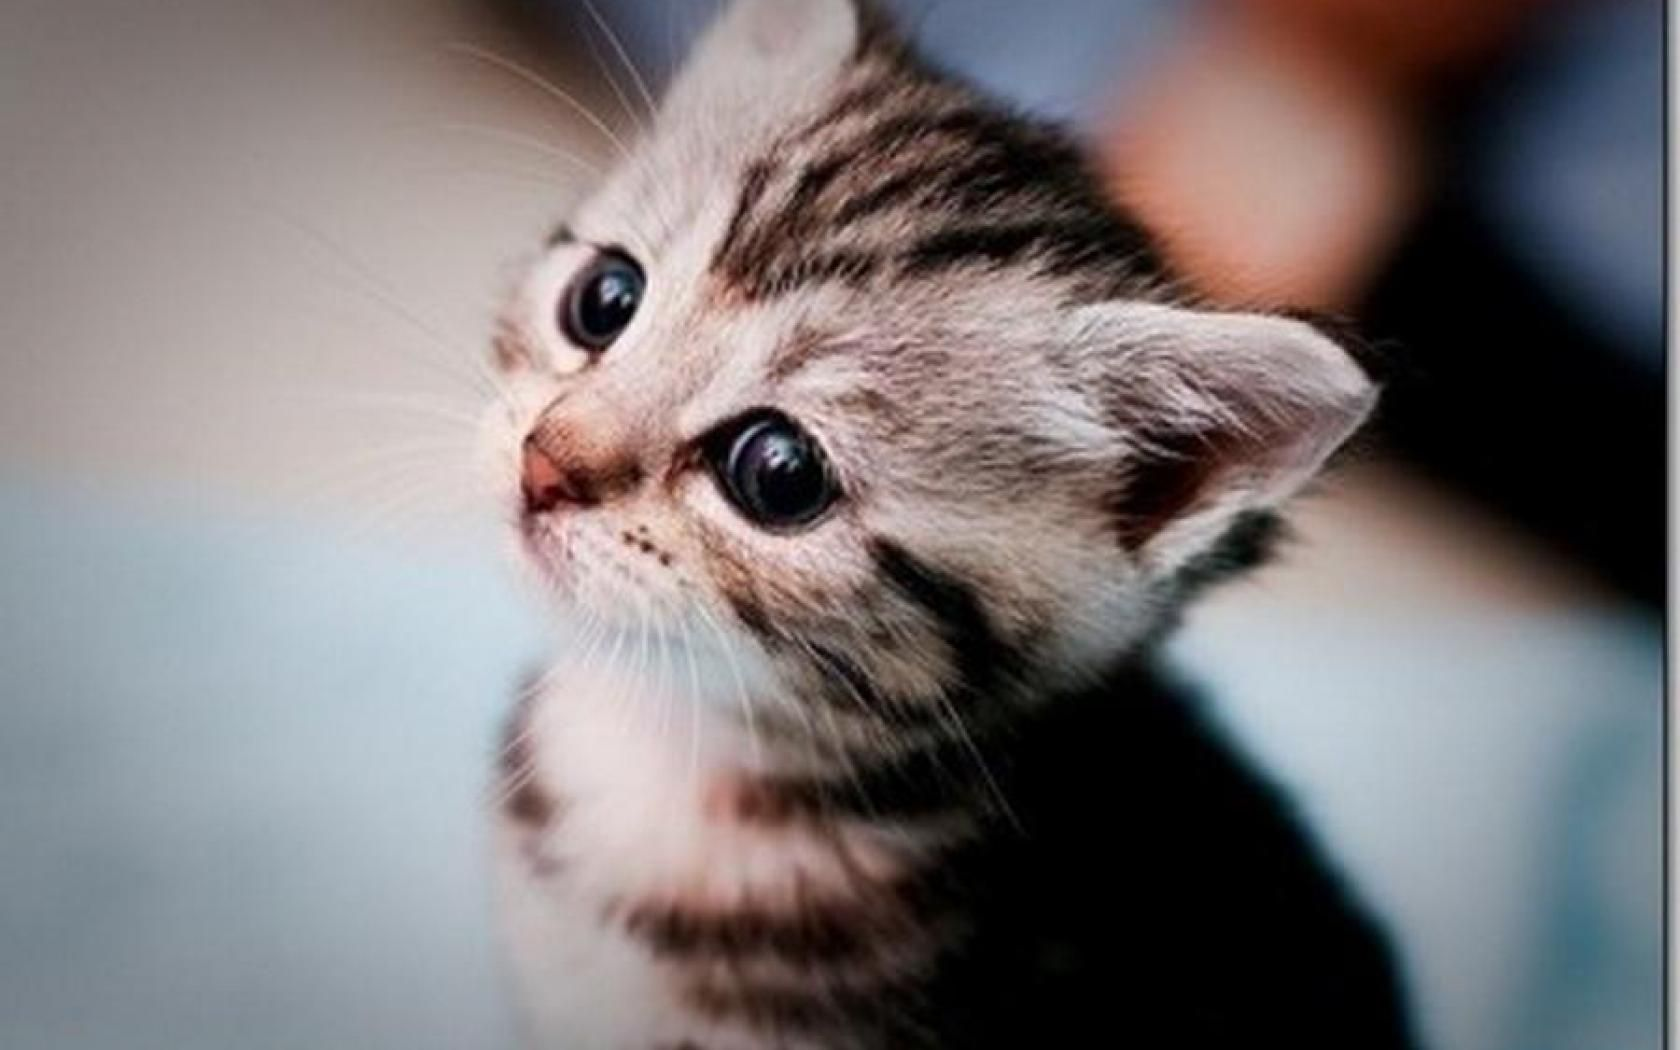 CUTE KITTEN WALLPAPER HD Wallpapers [wallpapersinhq